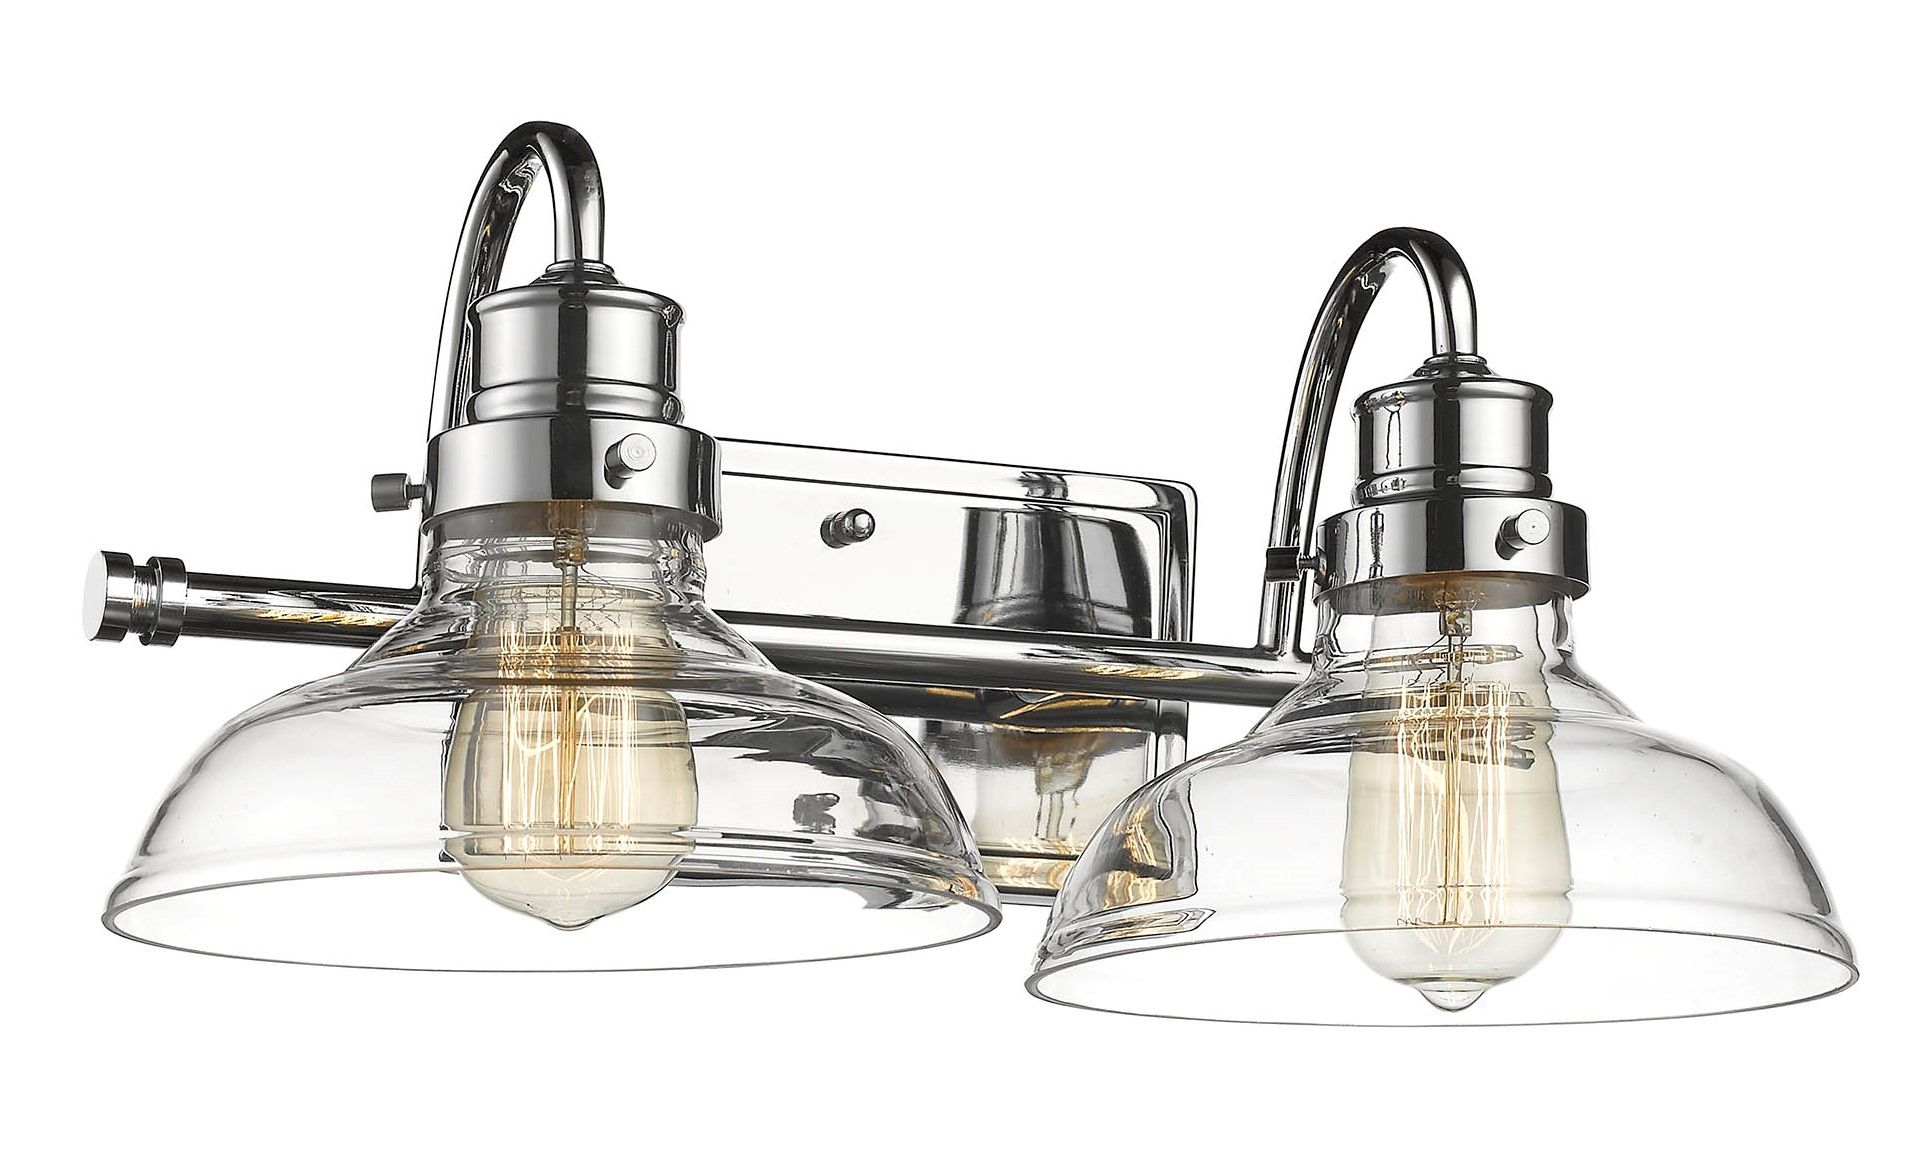 Millennium Restoration 2 Light Bathroom Vanity Light In Chrome Polish Nickel Finish